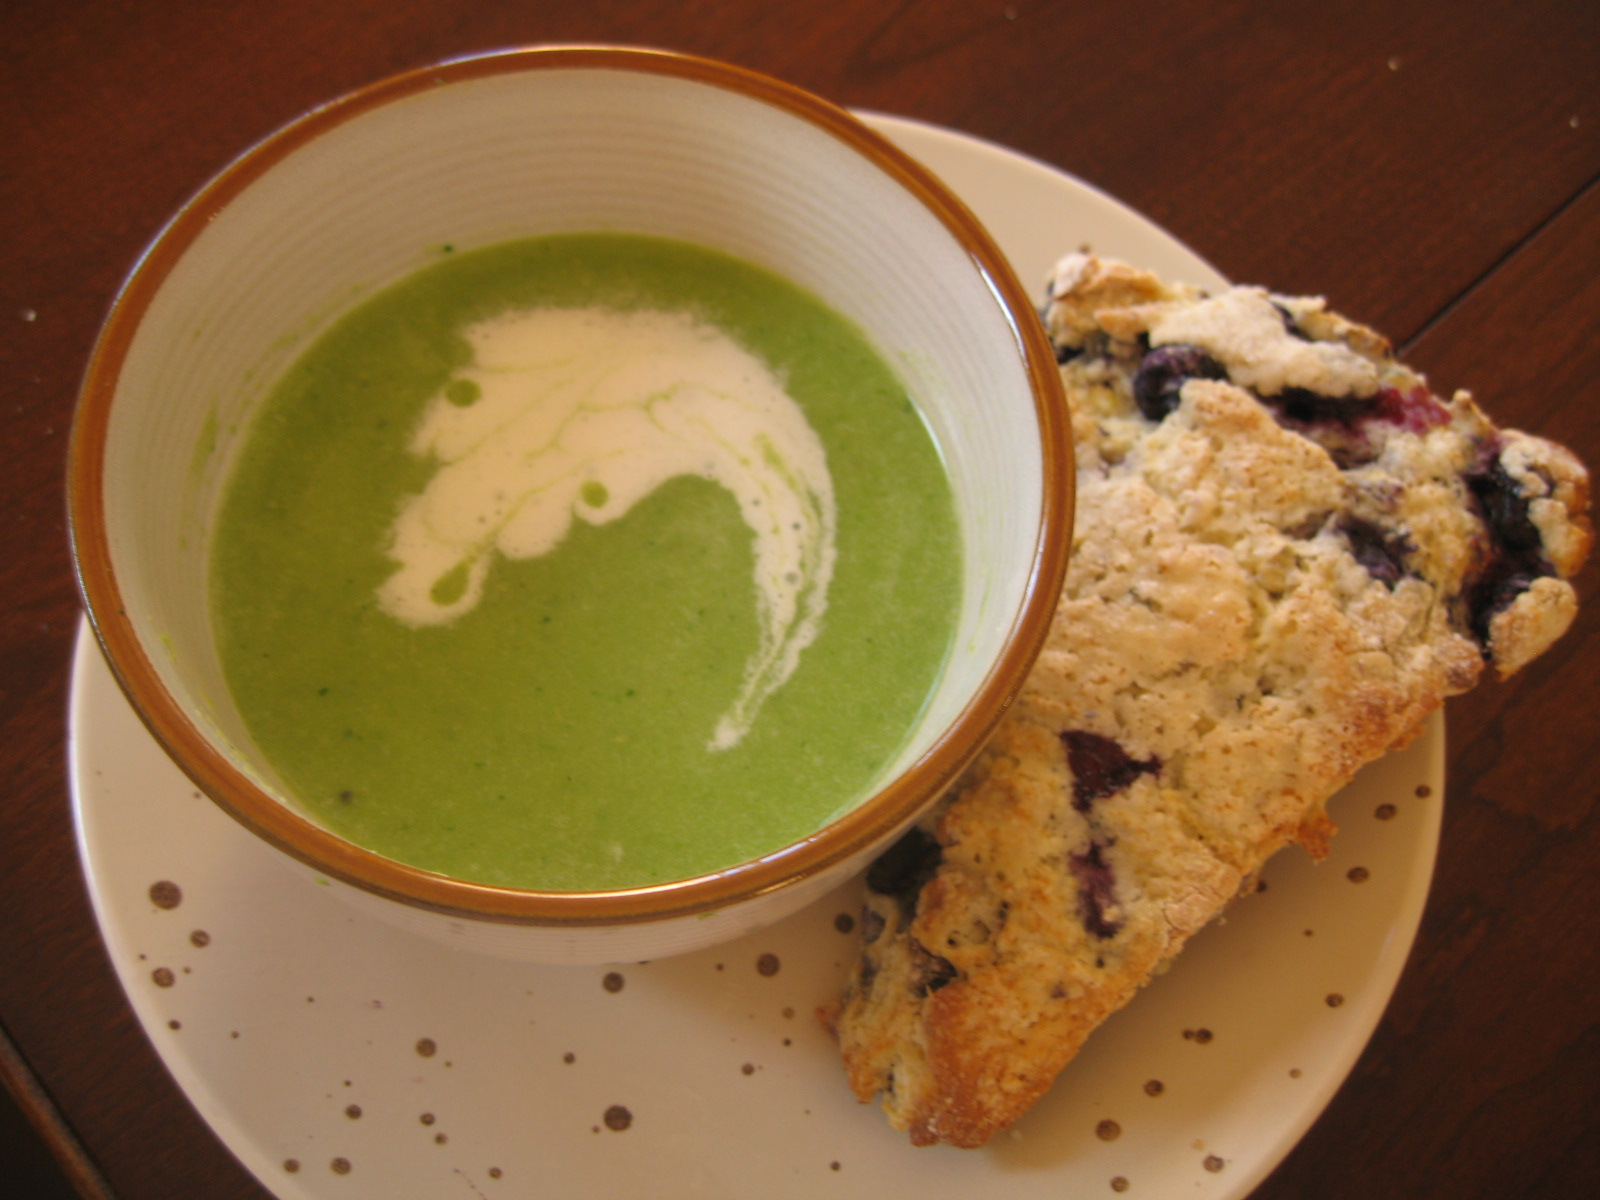 Green Pea Soup and Blueberry Scones